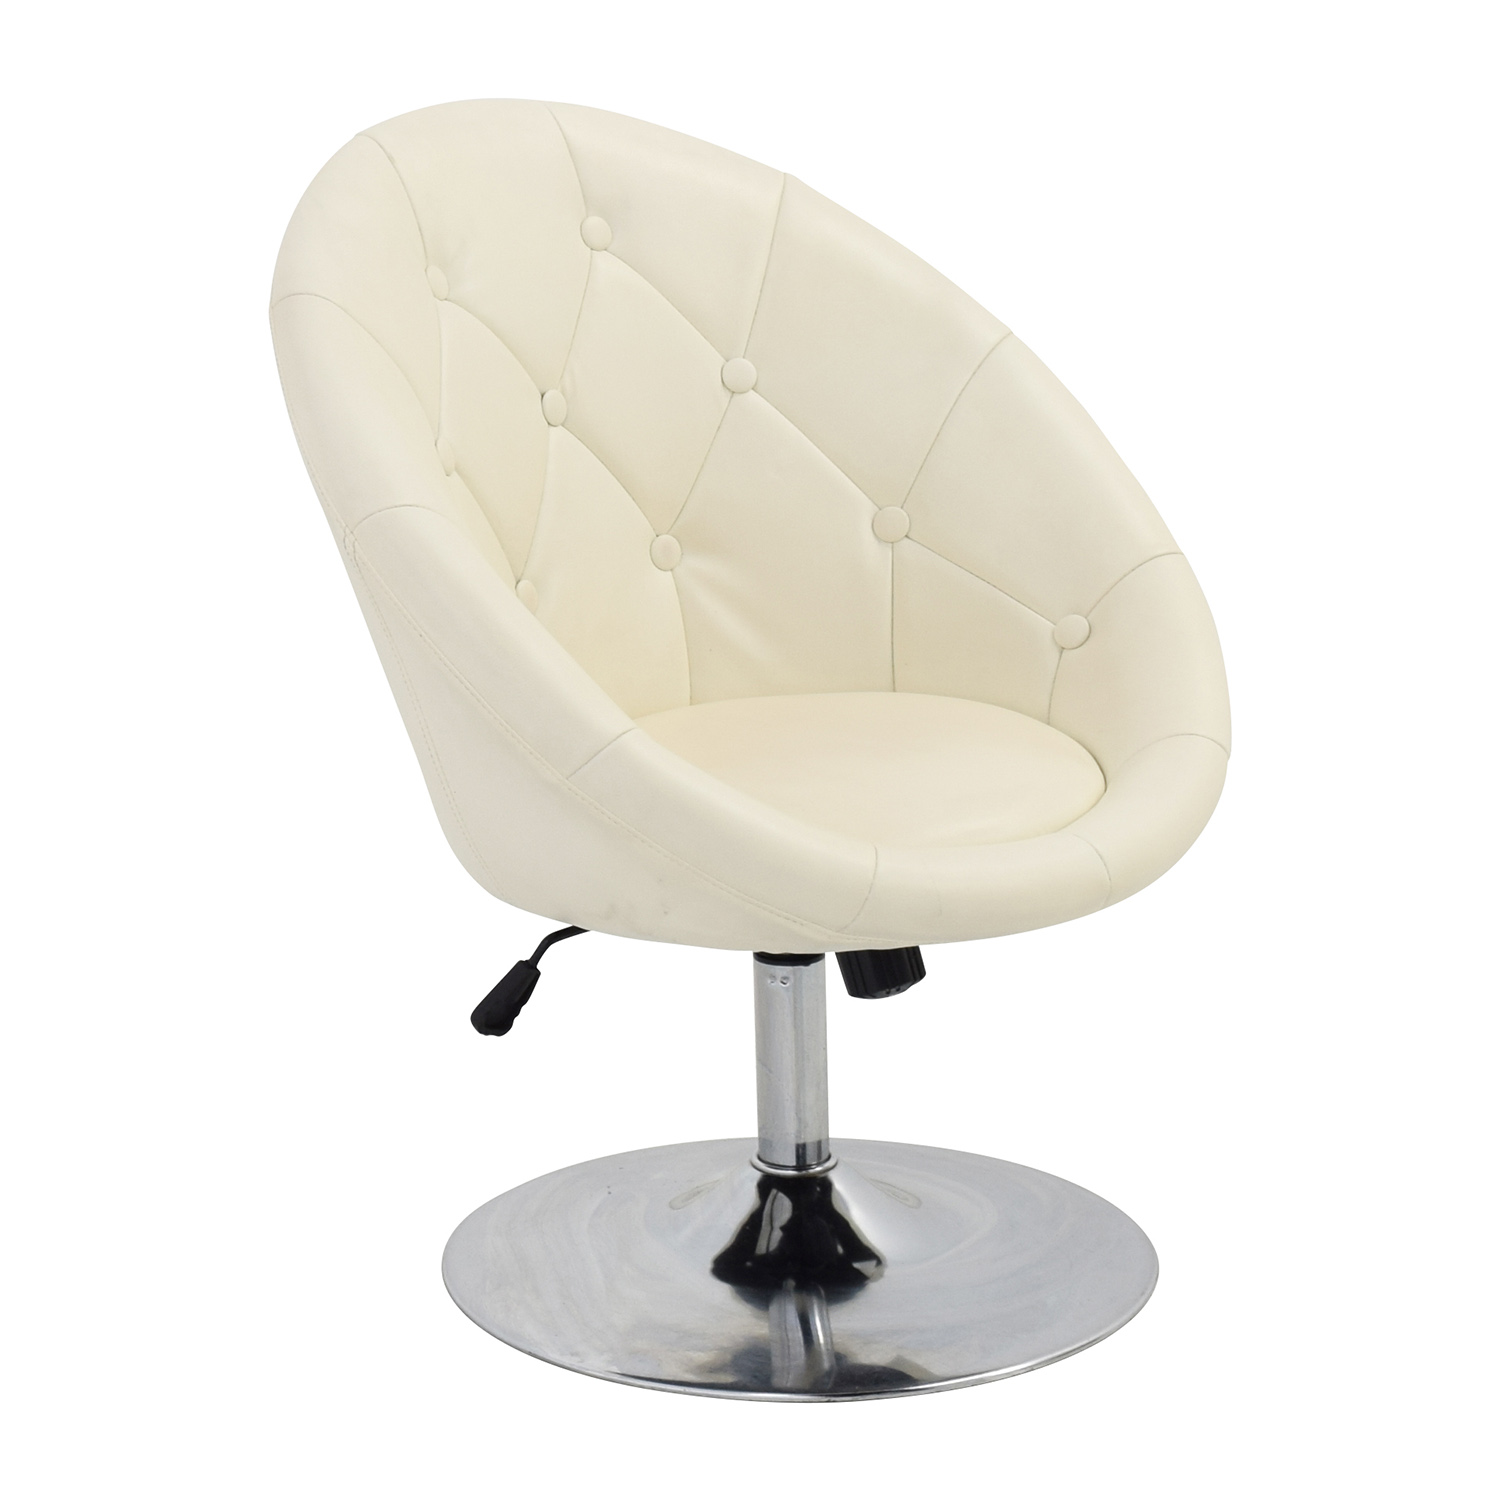 59% OFF Coaster Coaster Tufted White Leather Swivel Chair Chairs